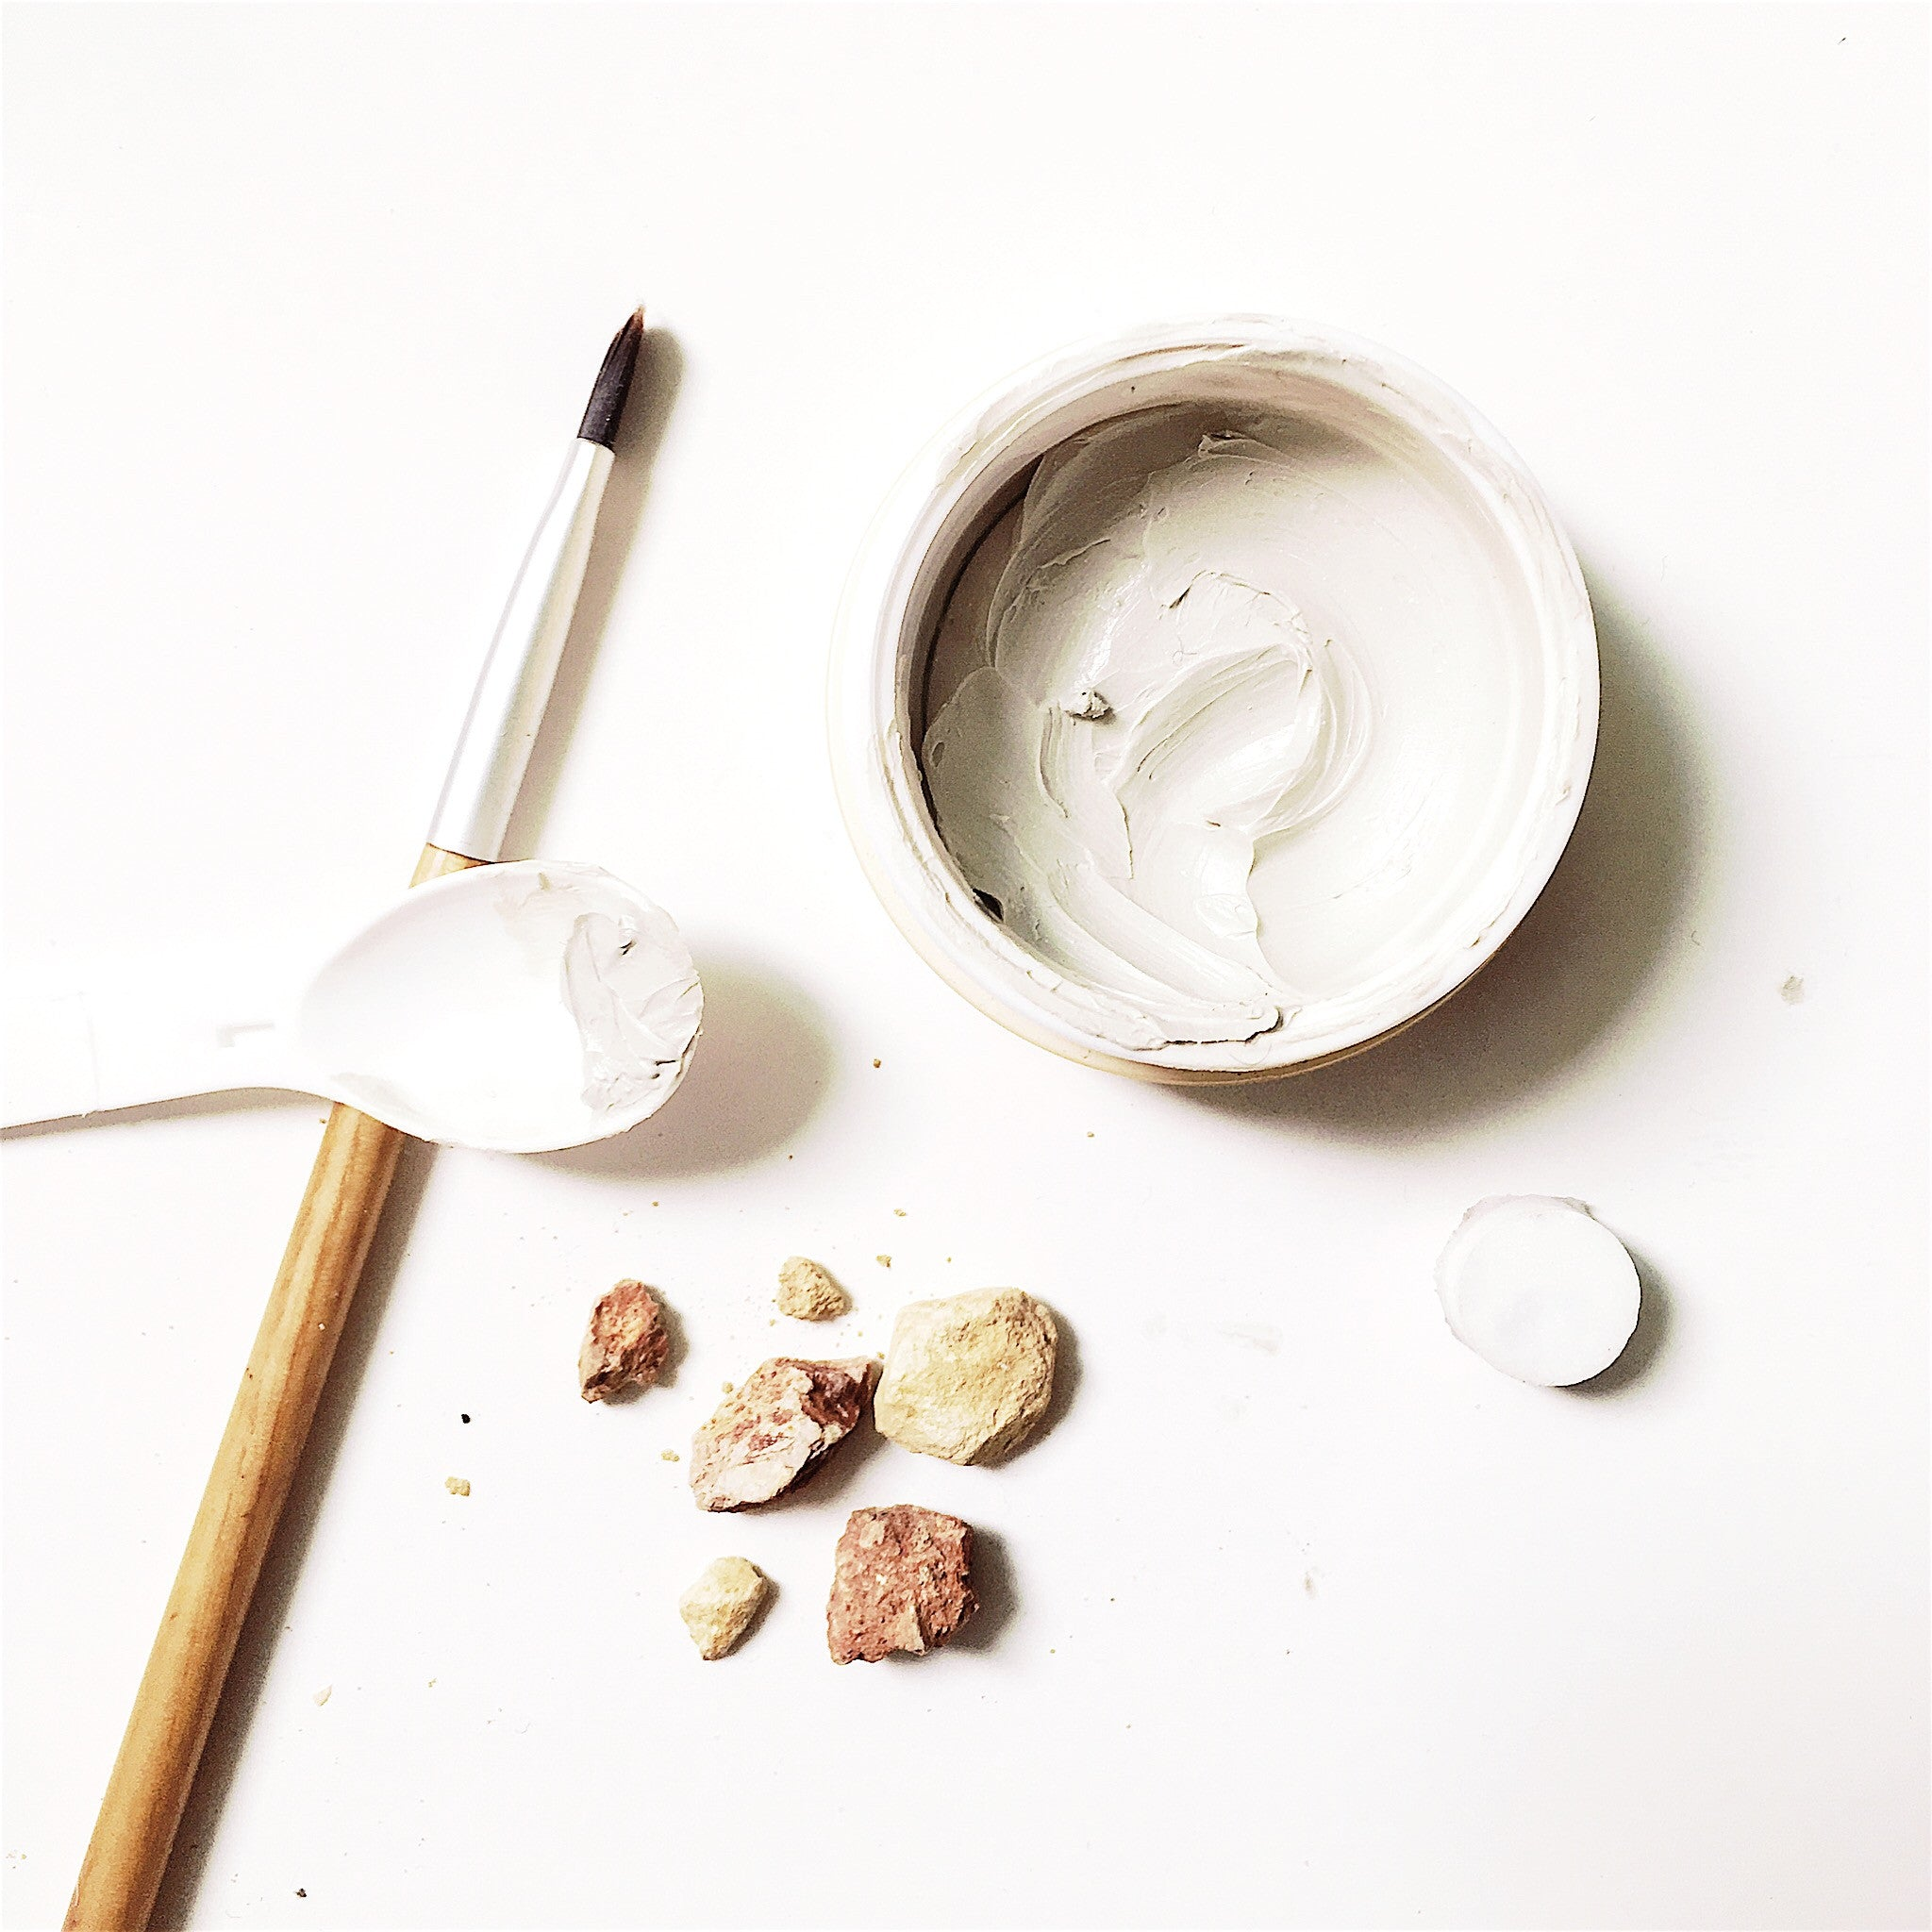 Petite Face mask - Texture exposed. Its not just Clay, its oil infused clay for skin nutrients